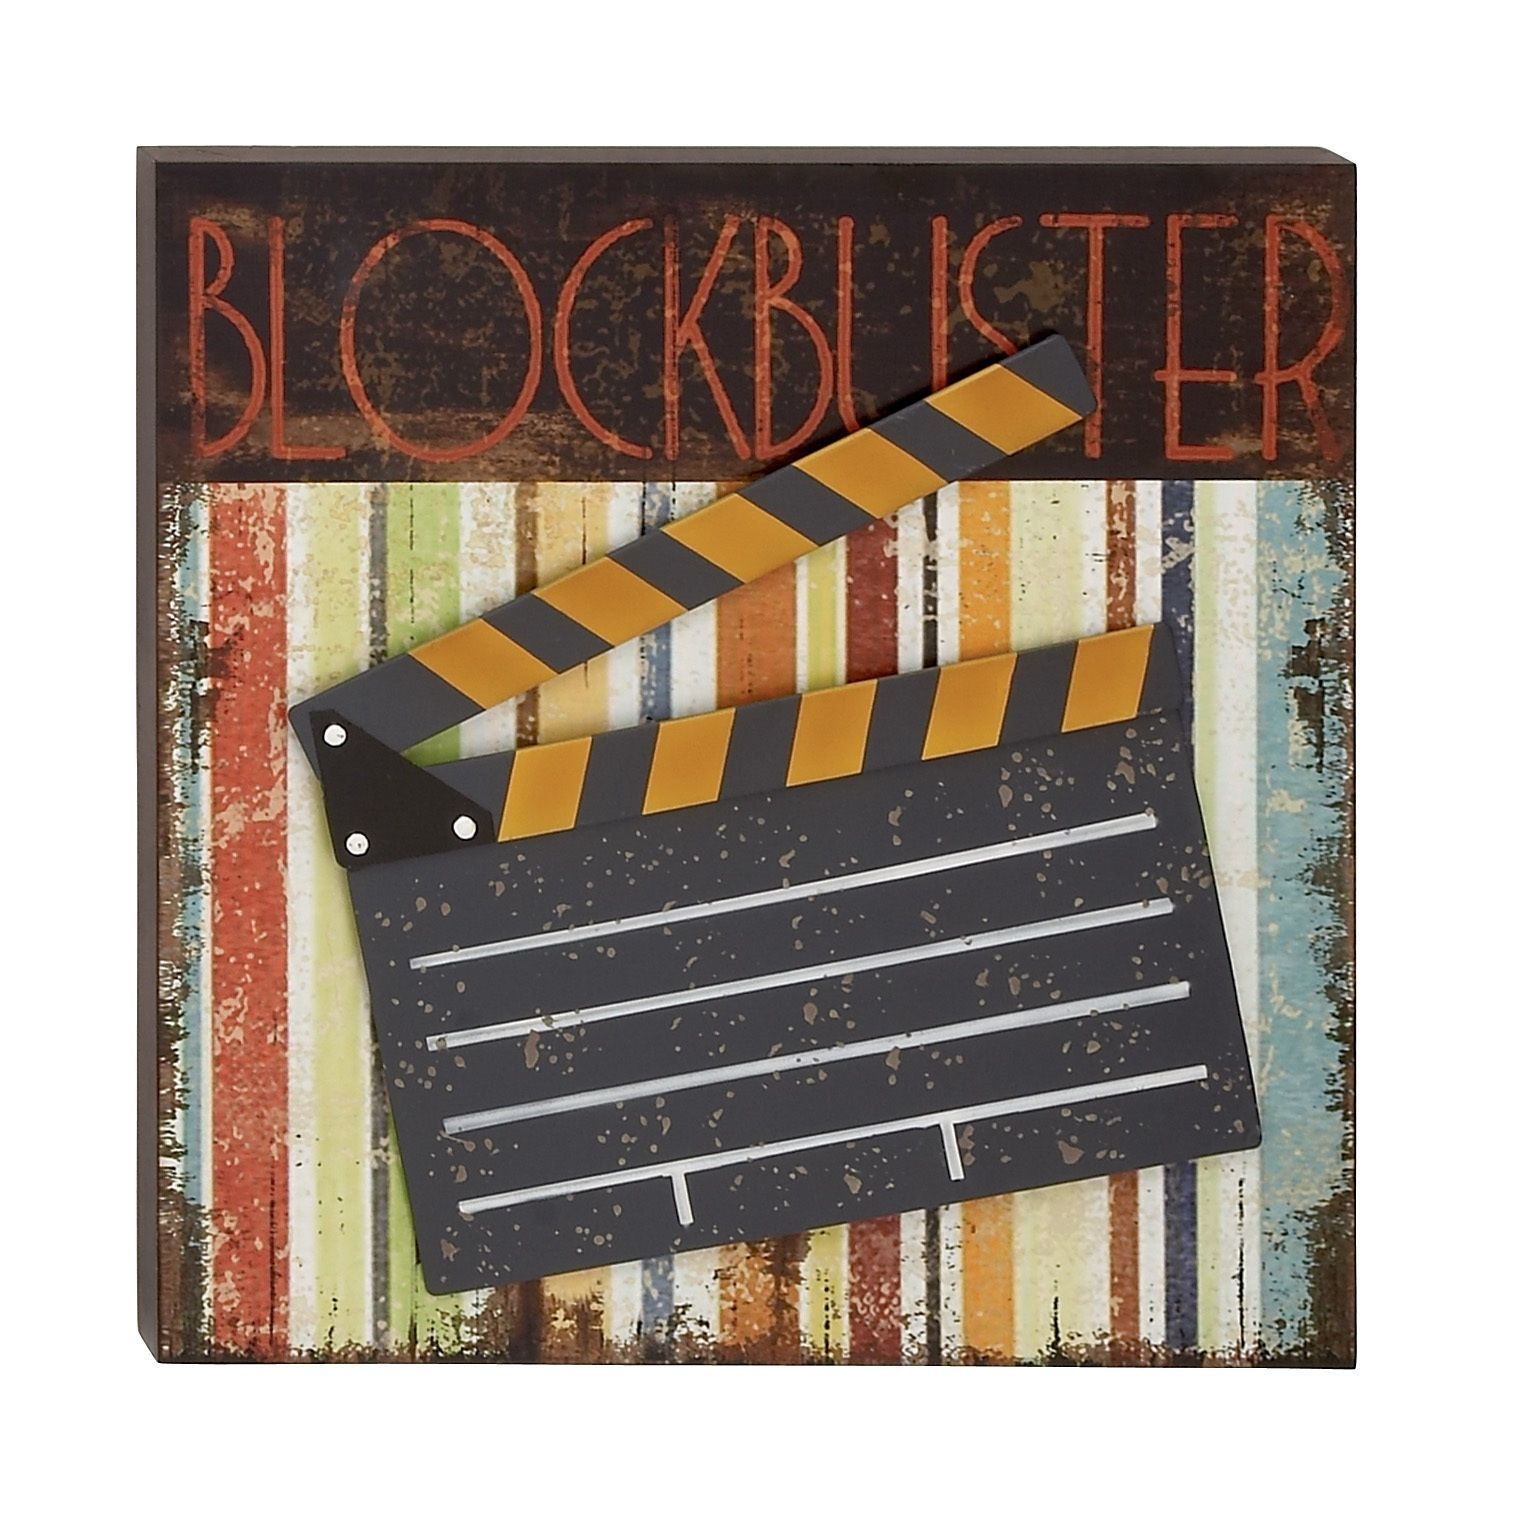 Theatre Movie Clapperboard Action Hollywood Film Wall Art Theater